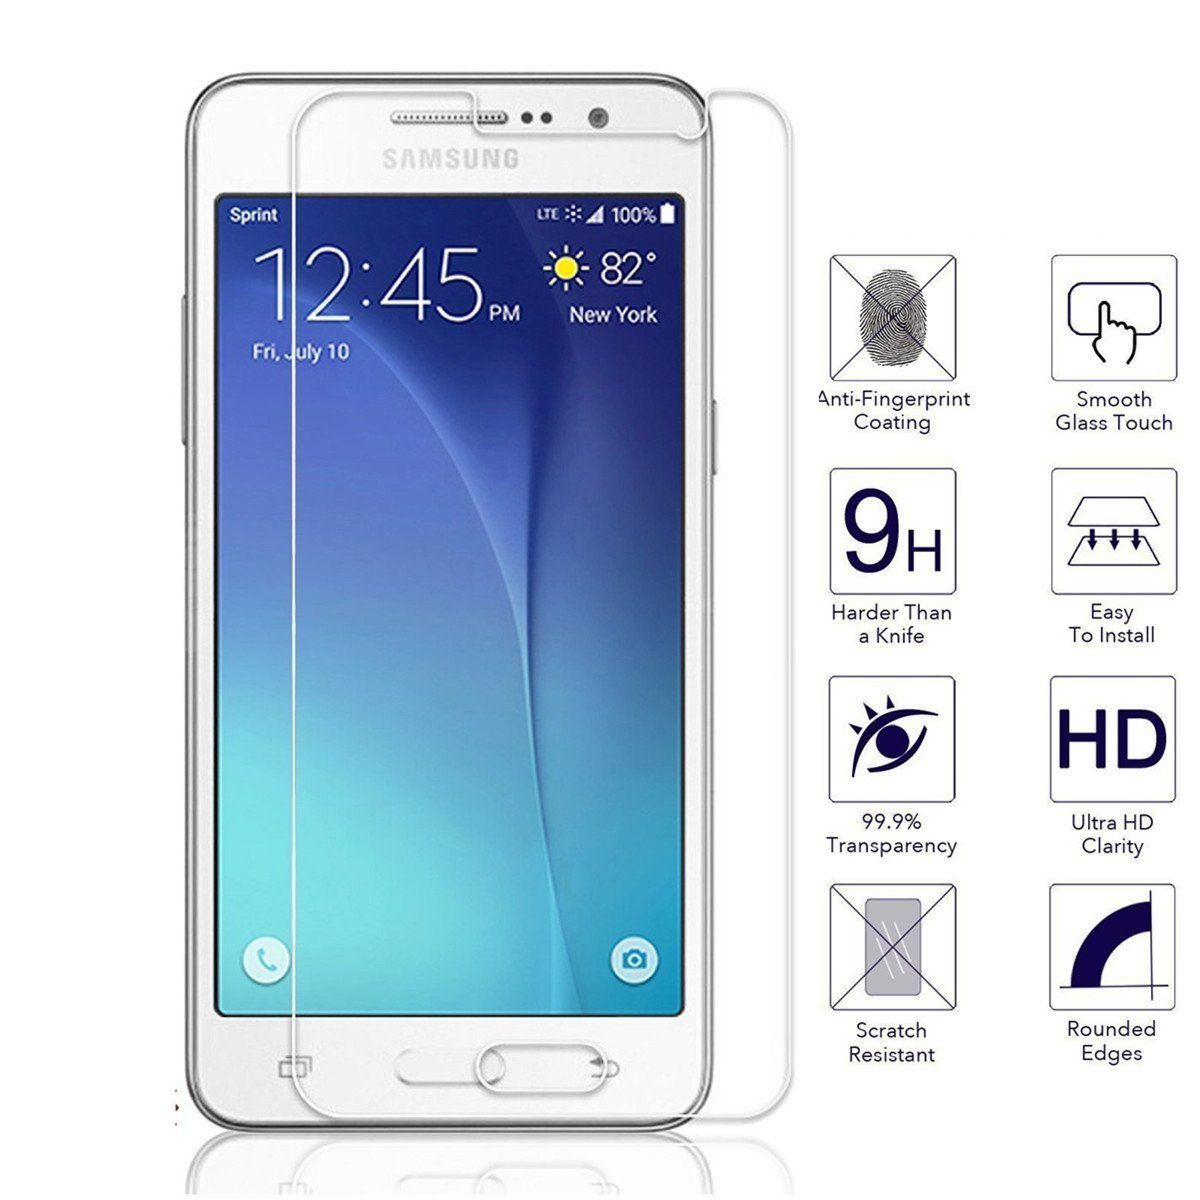 Tempered Glass For Samsung Galaxy S3 S4 S5 Neo S6 J7 J5 J3 J1 2016 Core J2 Prime G360 G361f Grand Prime Ve G Samsung Galaxy Samsung Galaxy A3 Samsung Galaxy S3